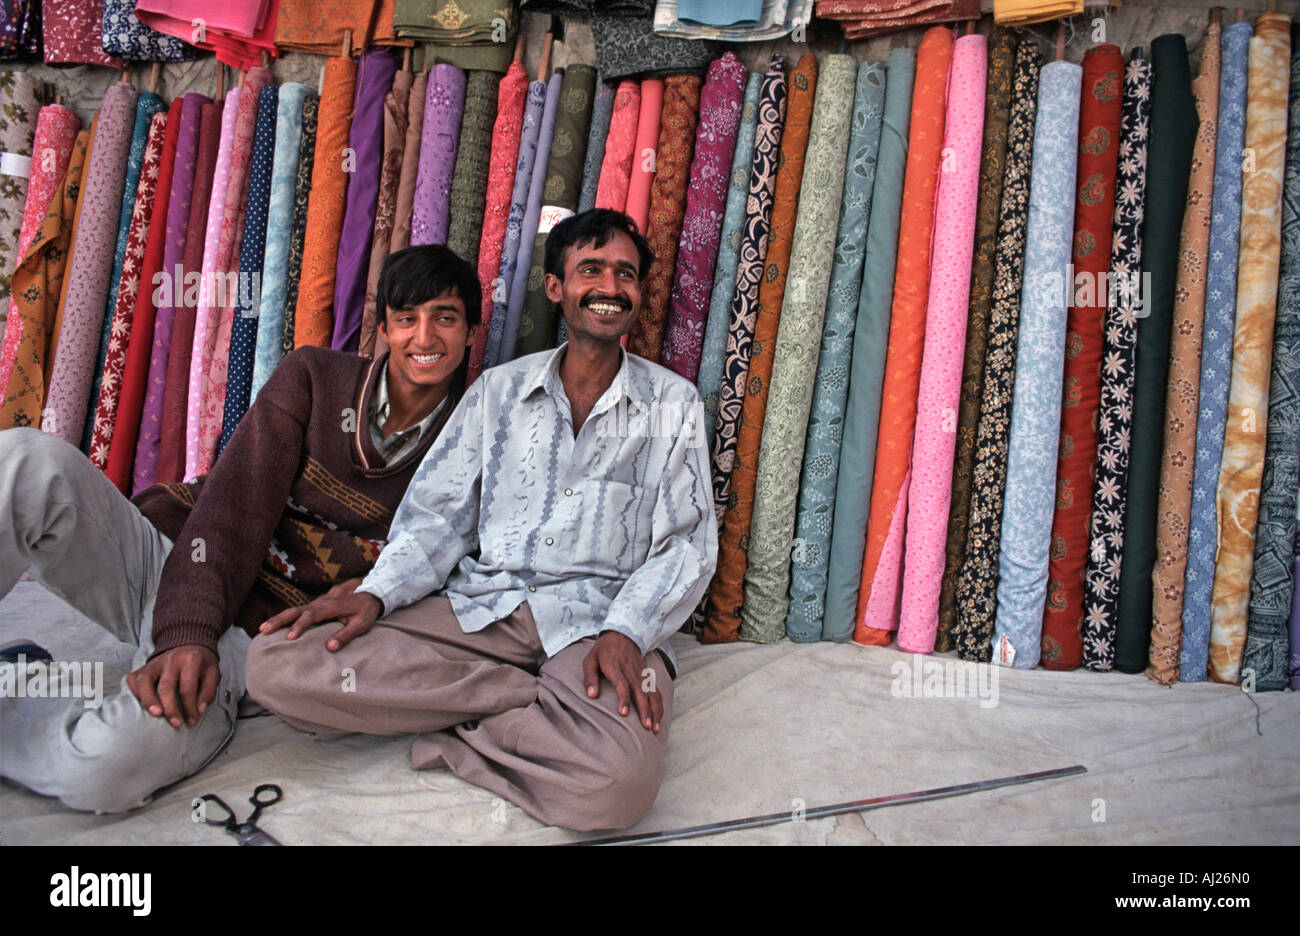 Fabric sellers at the Kashmiri market in Leh Ladakh Northern India - Stock Image